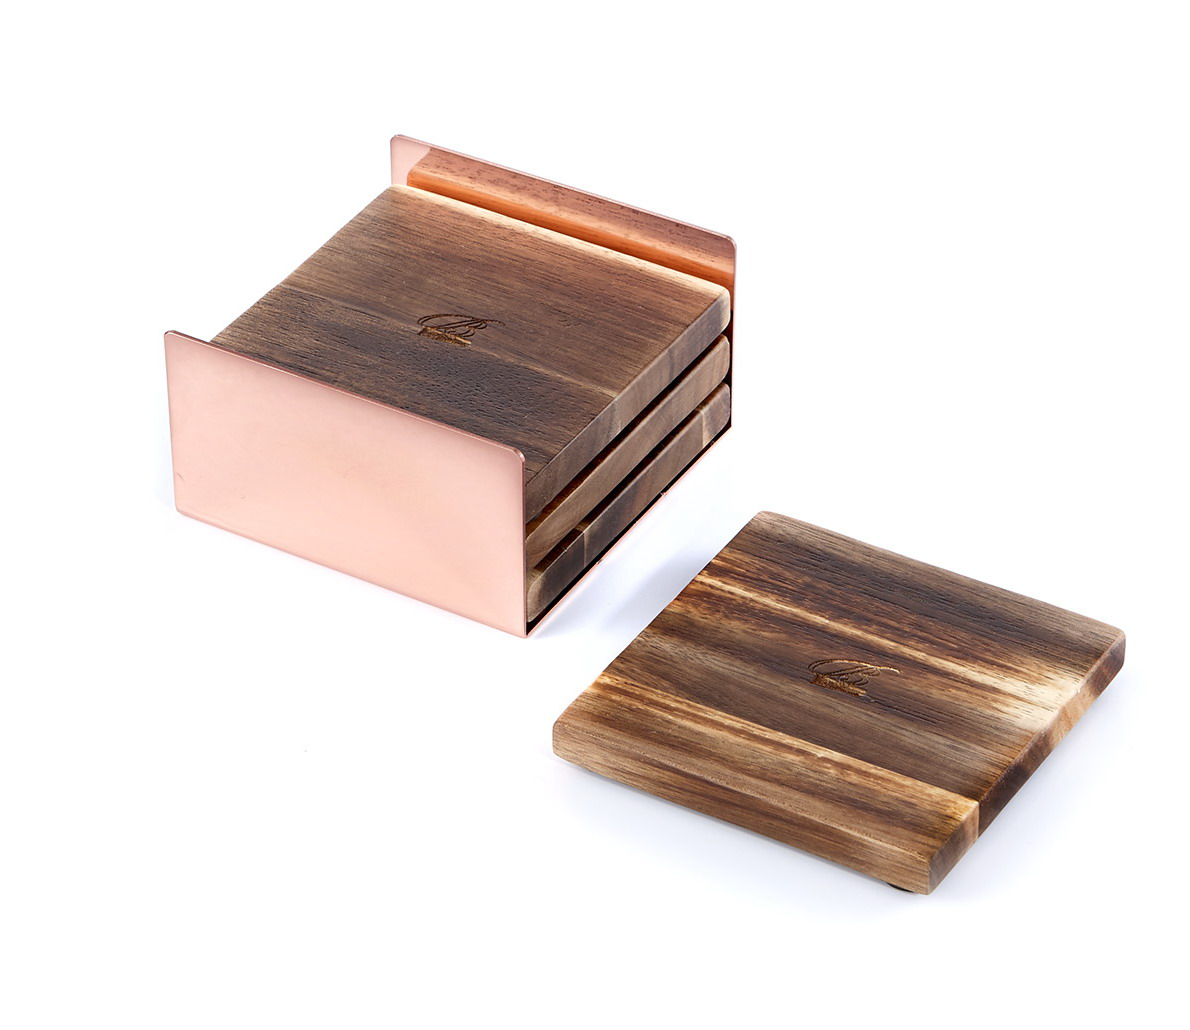 Wooden Coaster Holder Acacia Square Wooden Coasters For Drinks With A Metal Coaster Holder Set Of 4